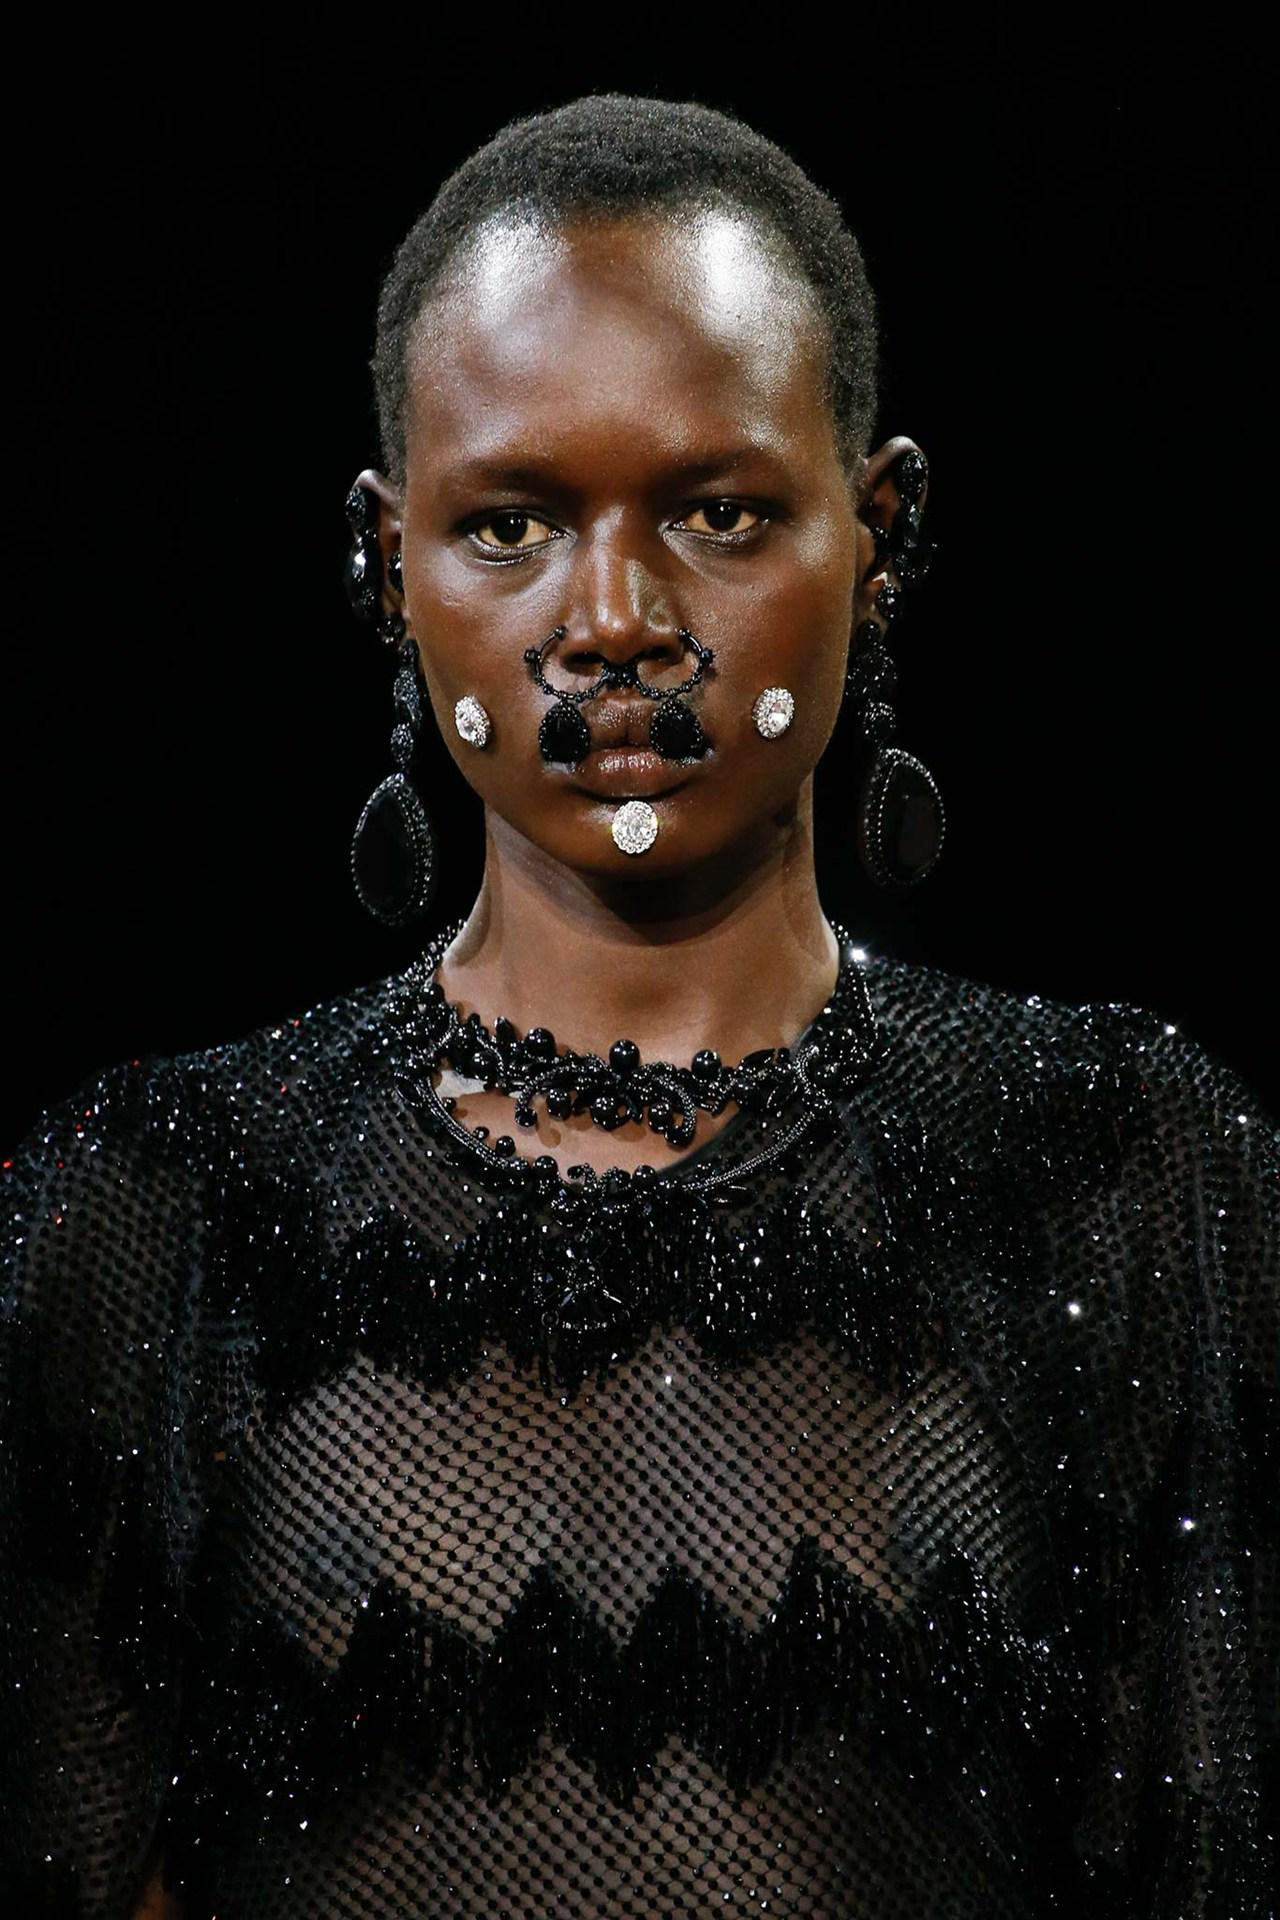 How @Givenchy's new show strategy could change fashion: http://t.co/BJ6vASHFUy http://t.co/t4C7Awu9K7